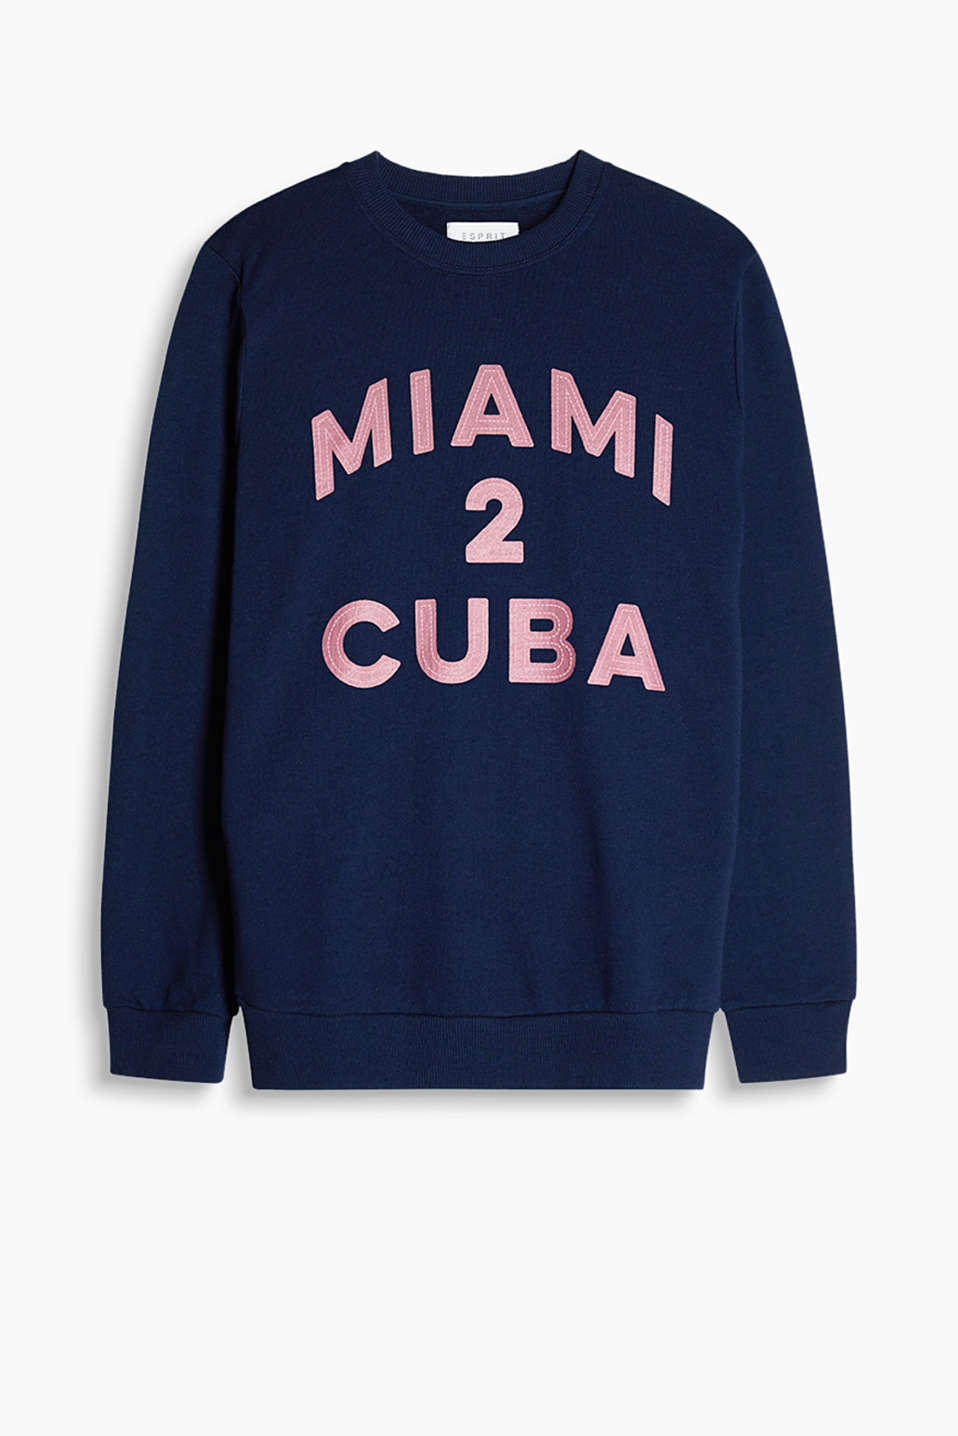 Sweatshirt with ribbed cuffs made of soft blended cotton with printed lettering